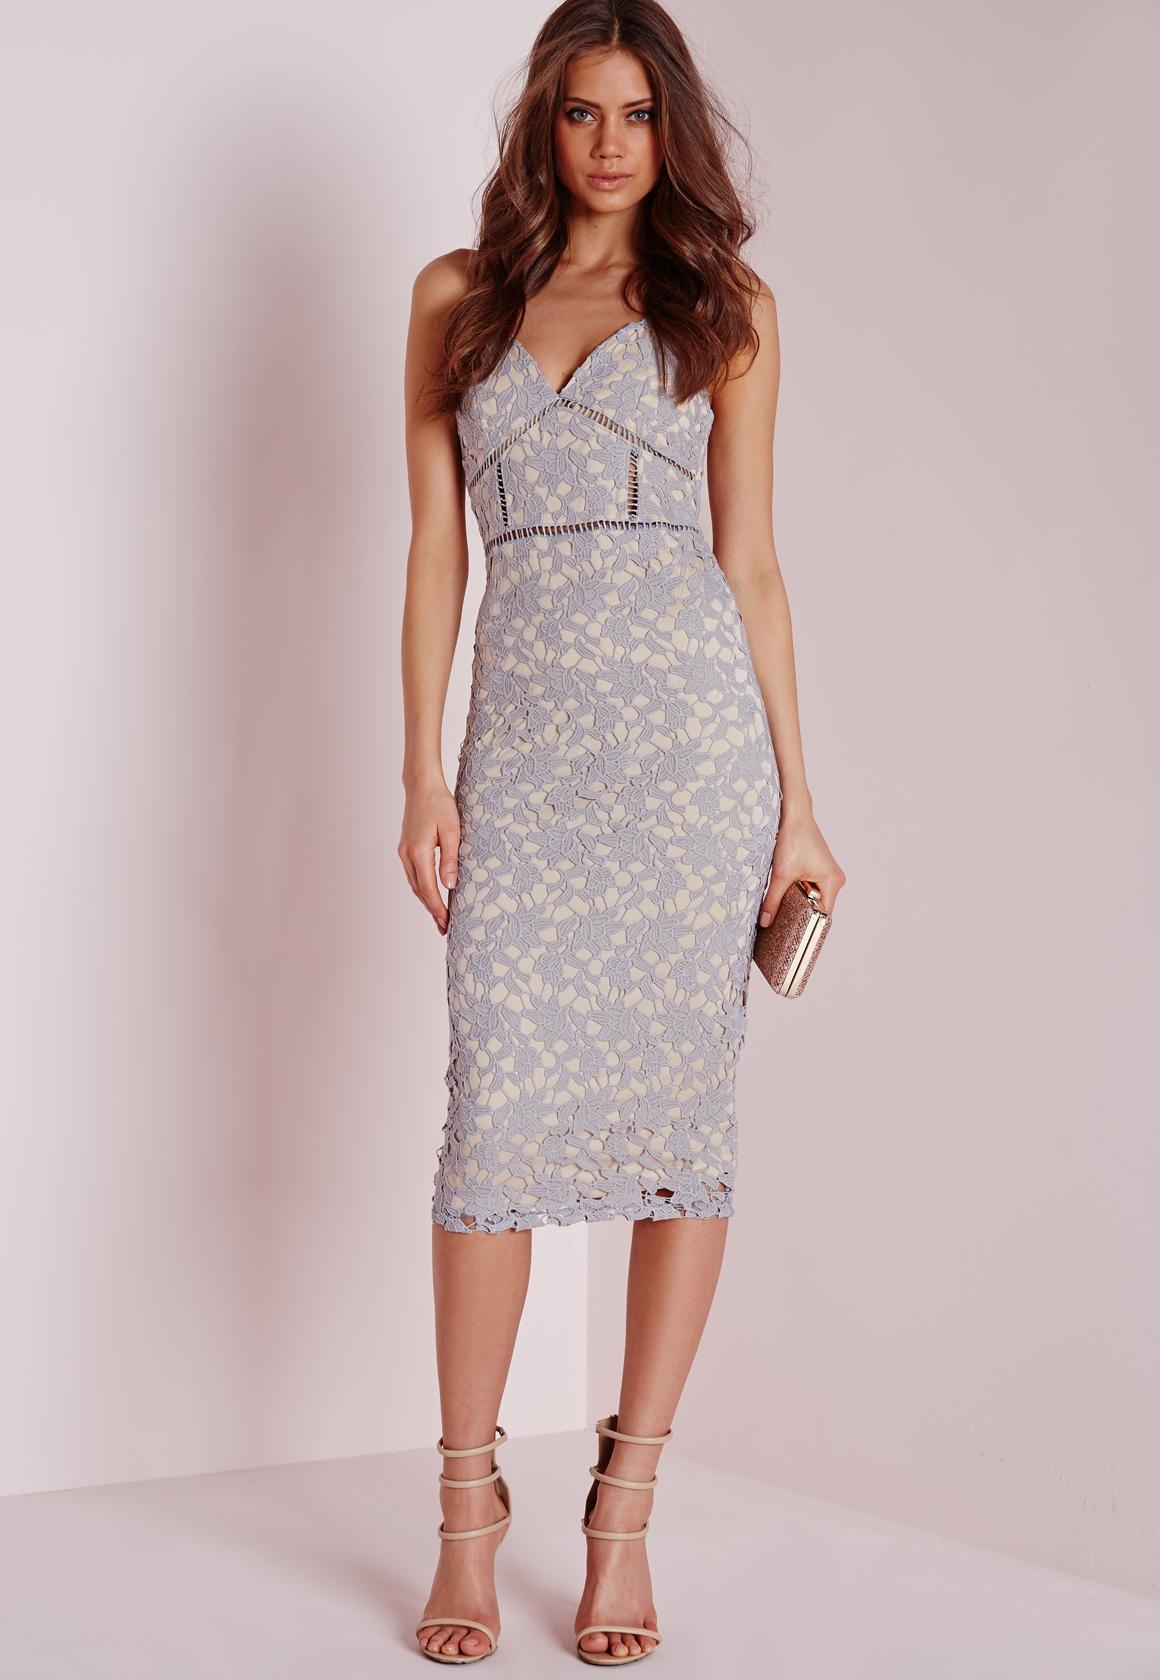 Wedding Gray Lace Dress tall exclusive strappy lace midi dress grey dresses grey